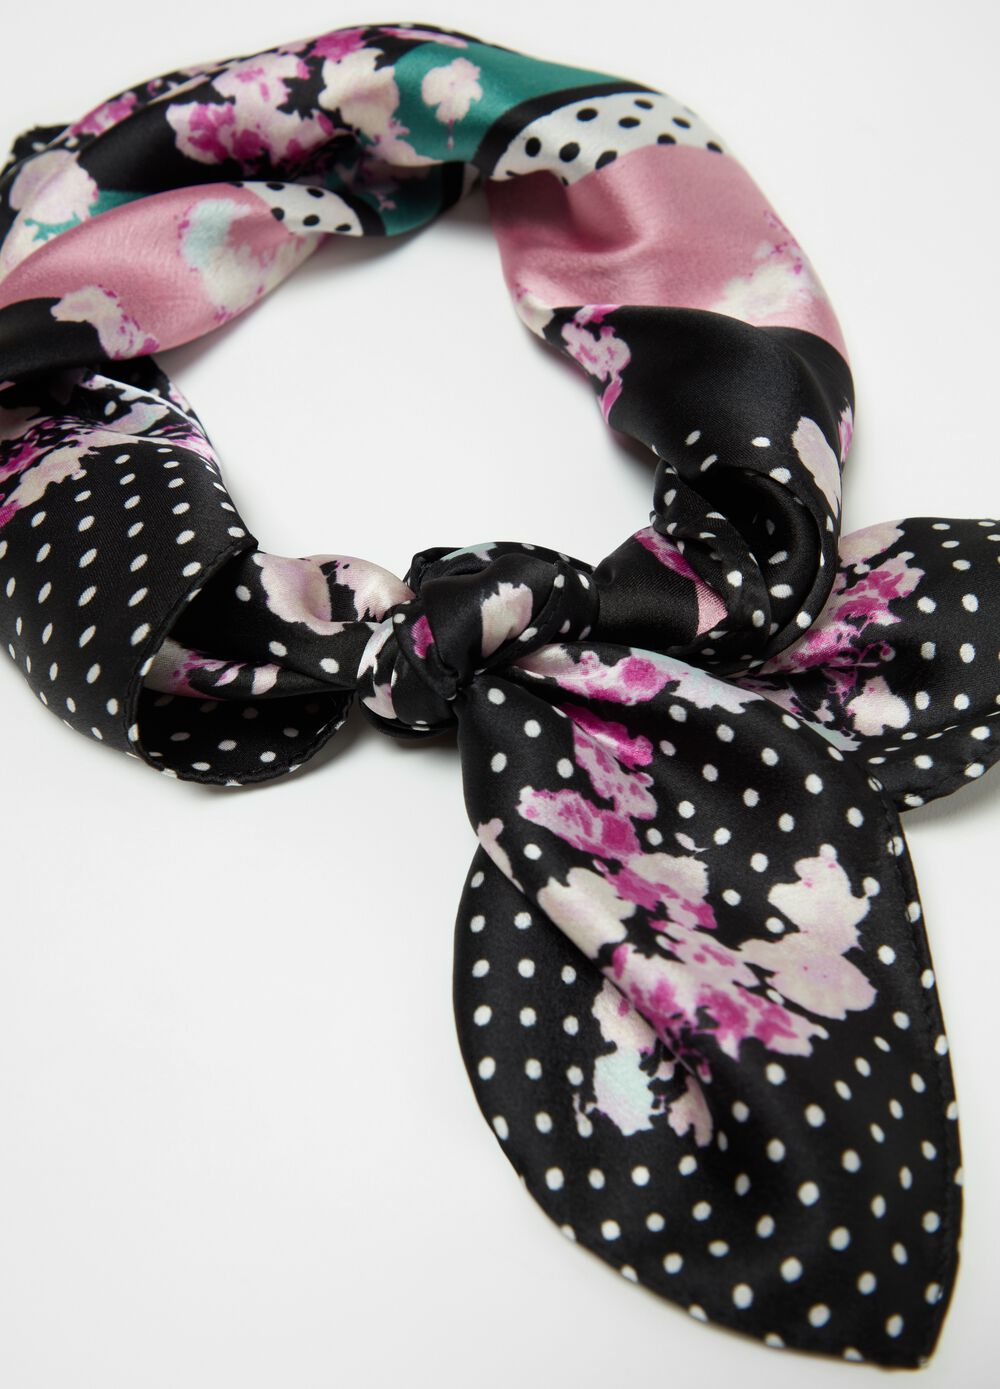 Foulard with flowers and polka dots print